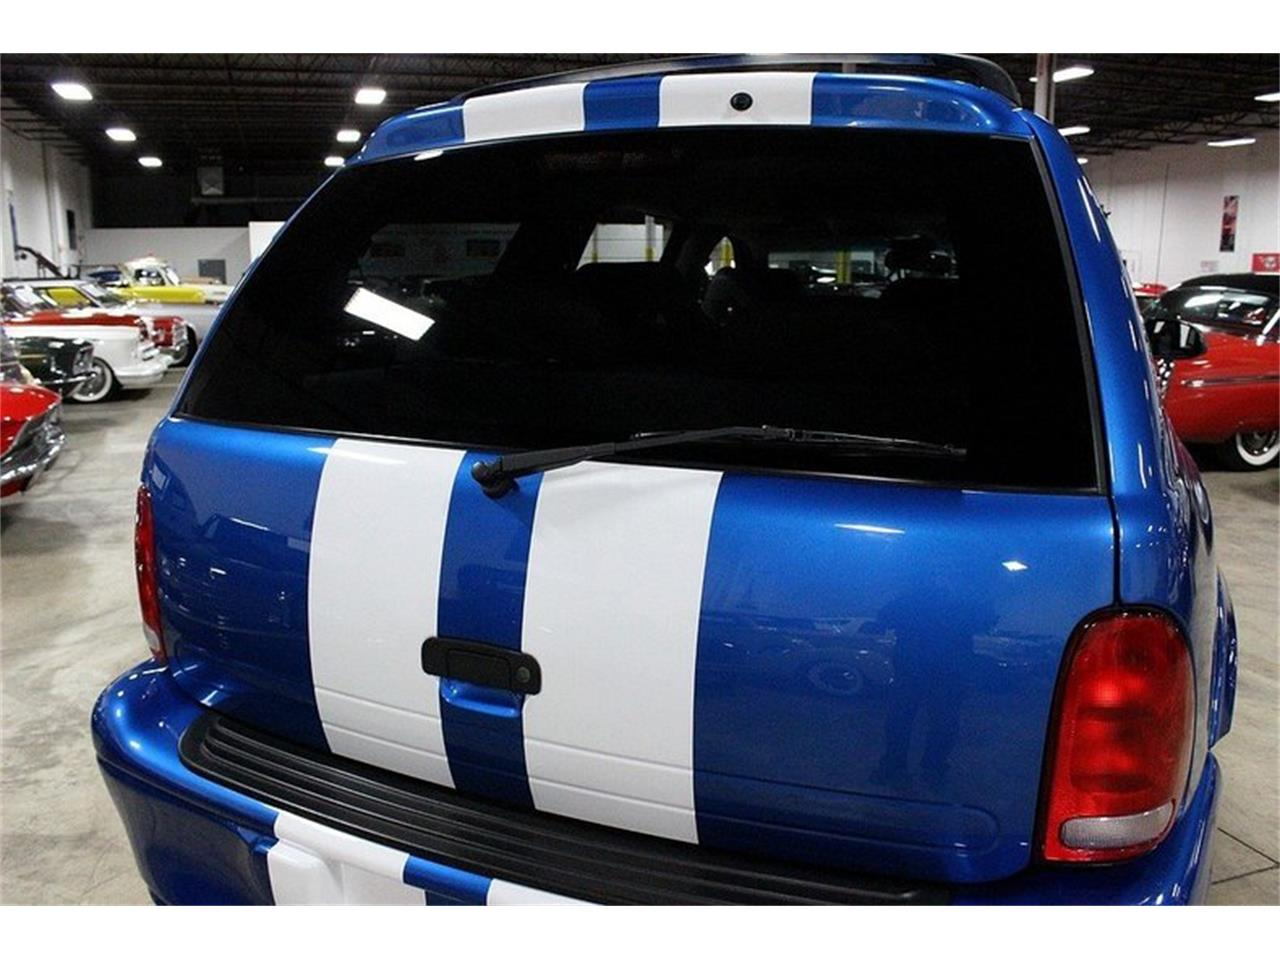 Large Picture of 1999 Dodge Durango Shelby SP-360 located in Michigan - $31,900.00 Offered by GR Auto Gallery - MB1Y